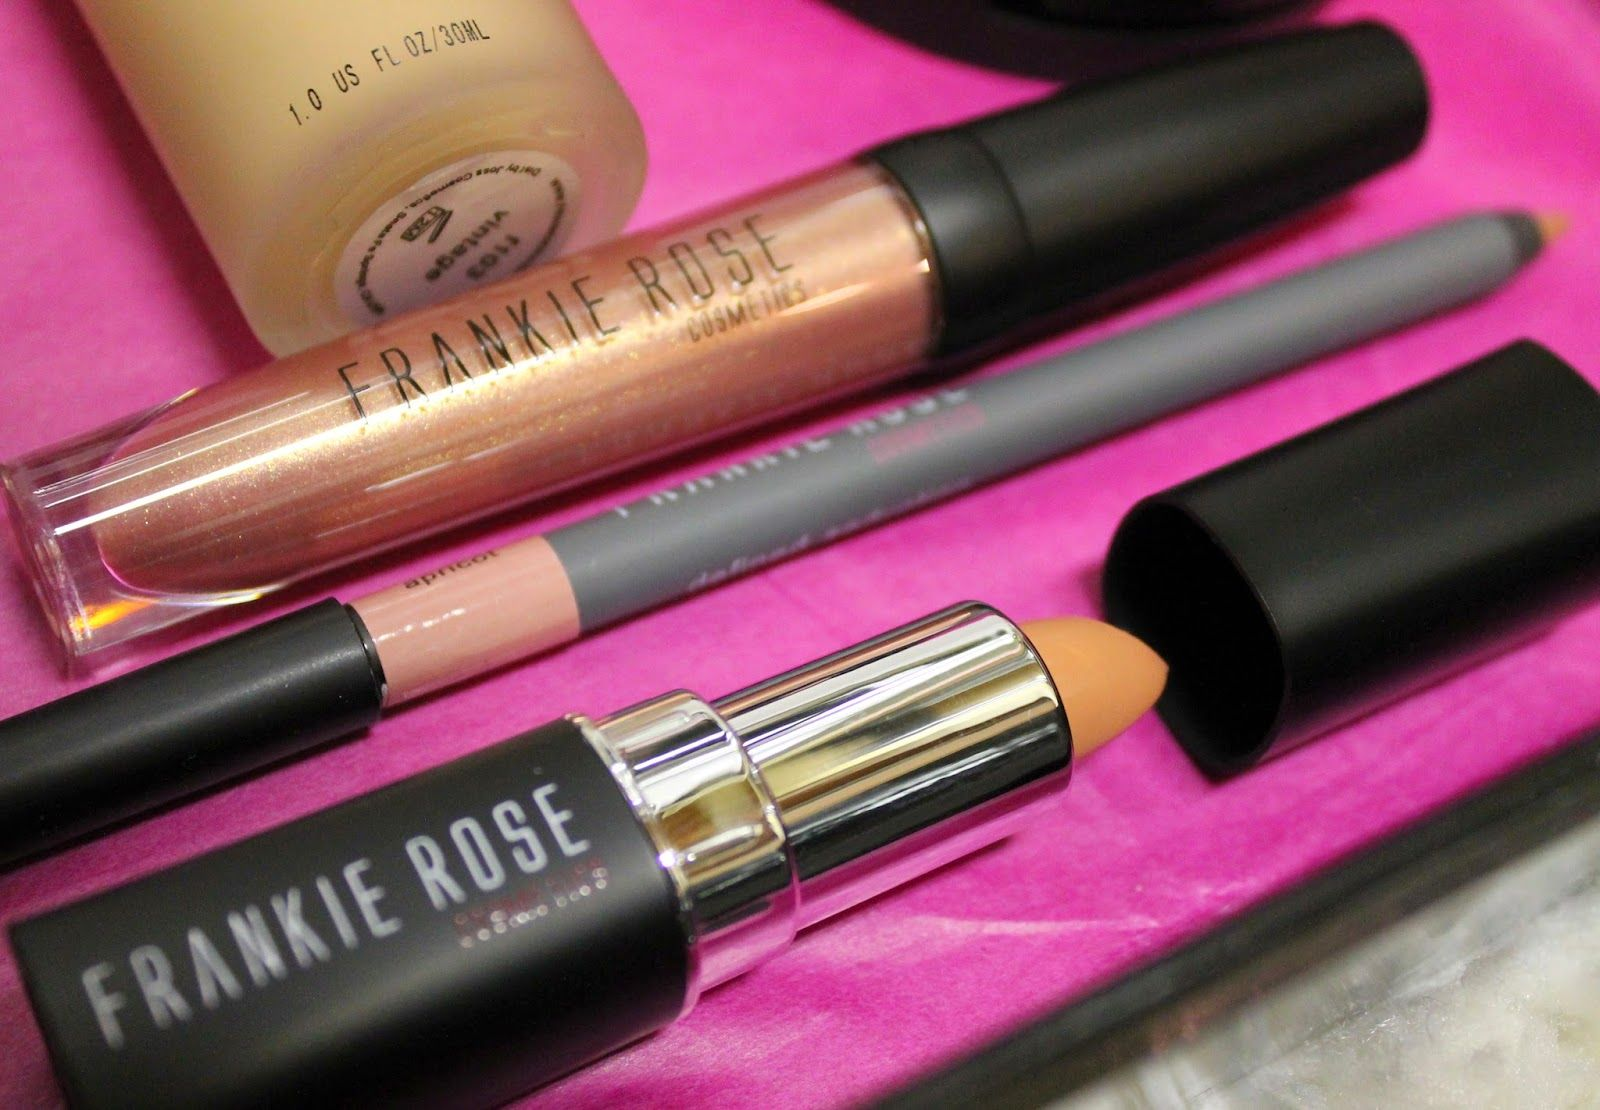 THE GLOSS GUIDE Frankie Rose Cosmetics Peach lips